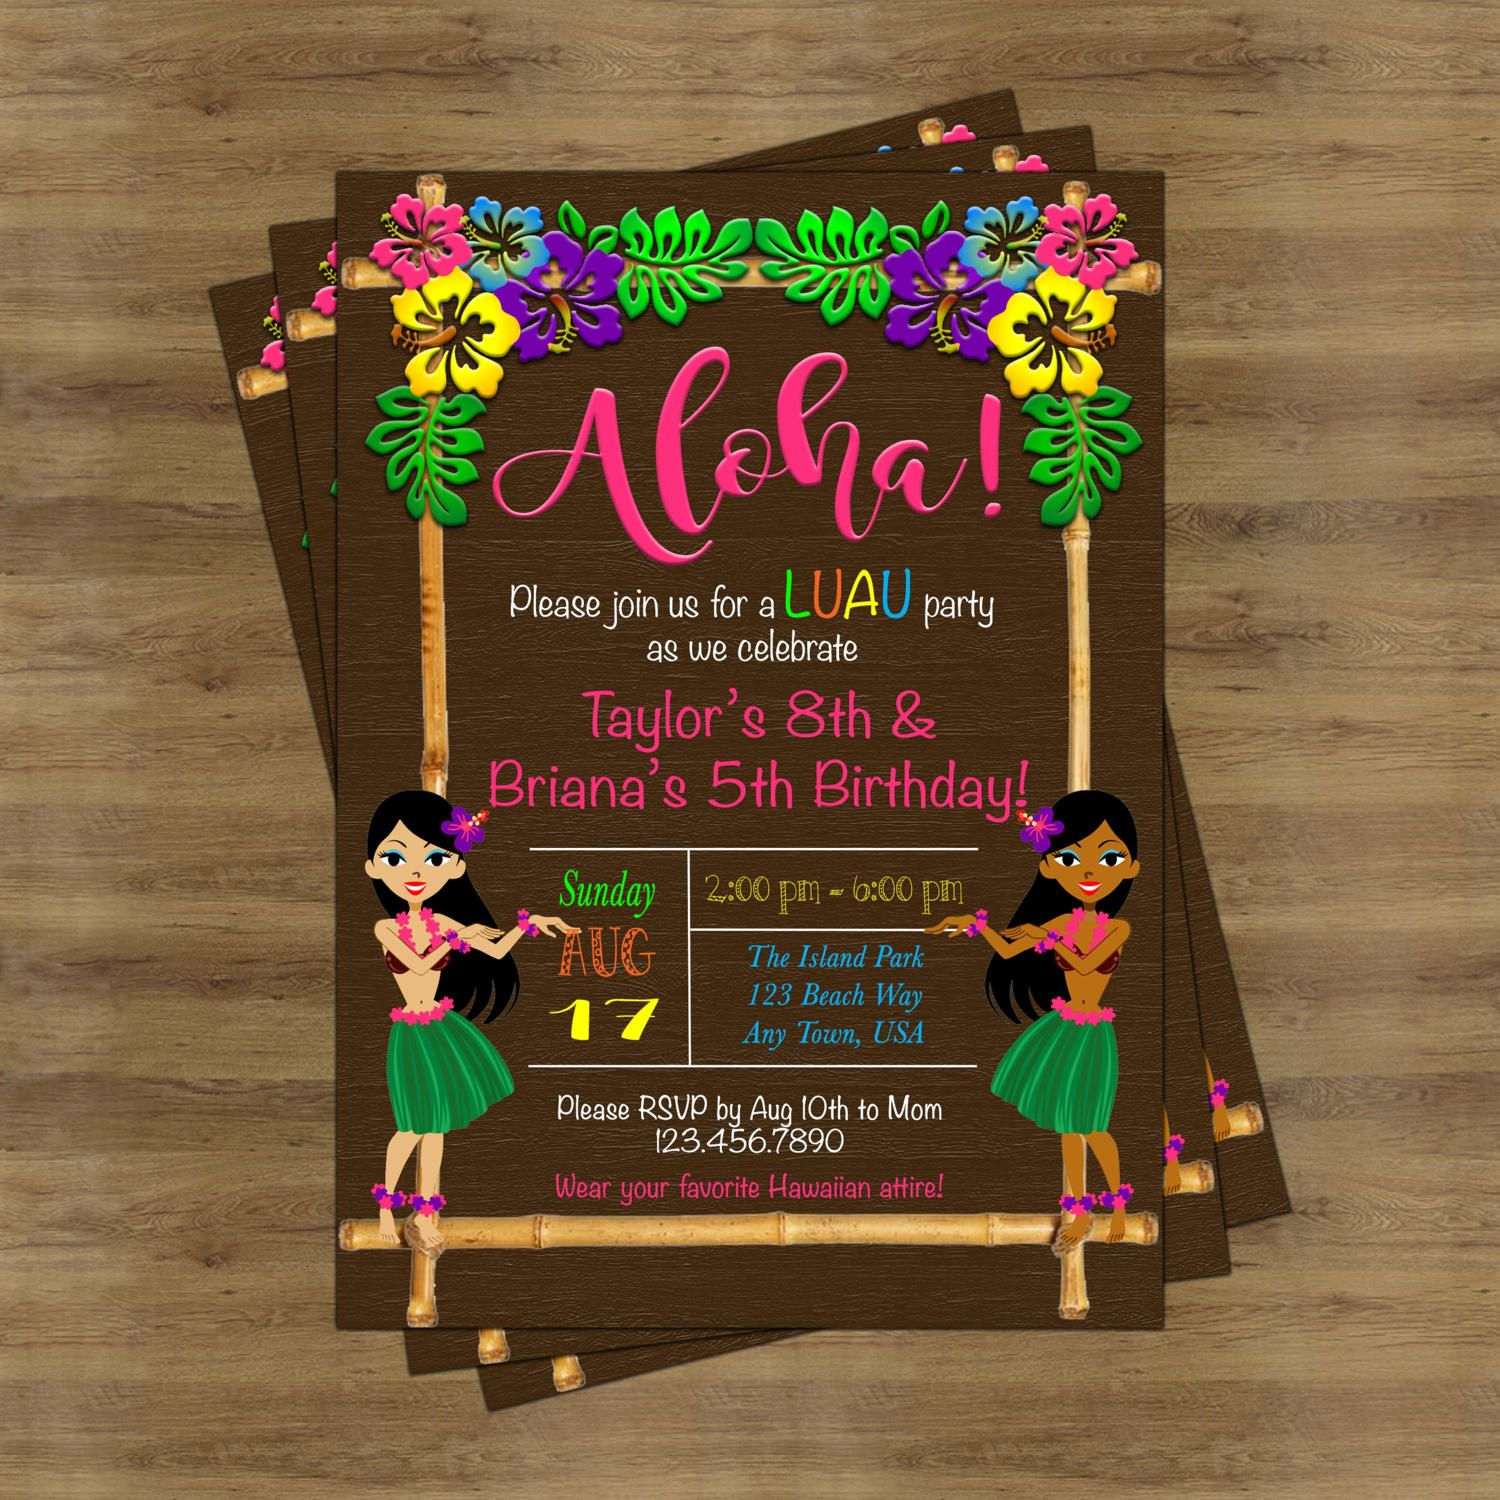 Luau birthday invitation luau invitation hawaiian invitation luau birthday invitation luau invitation hawaiian invitation hawaiian party invitations tropical invitation stopboris Image collections